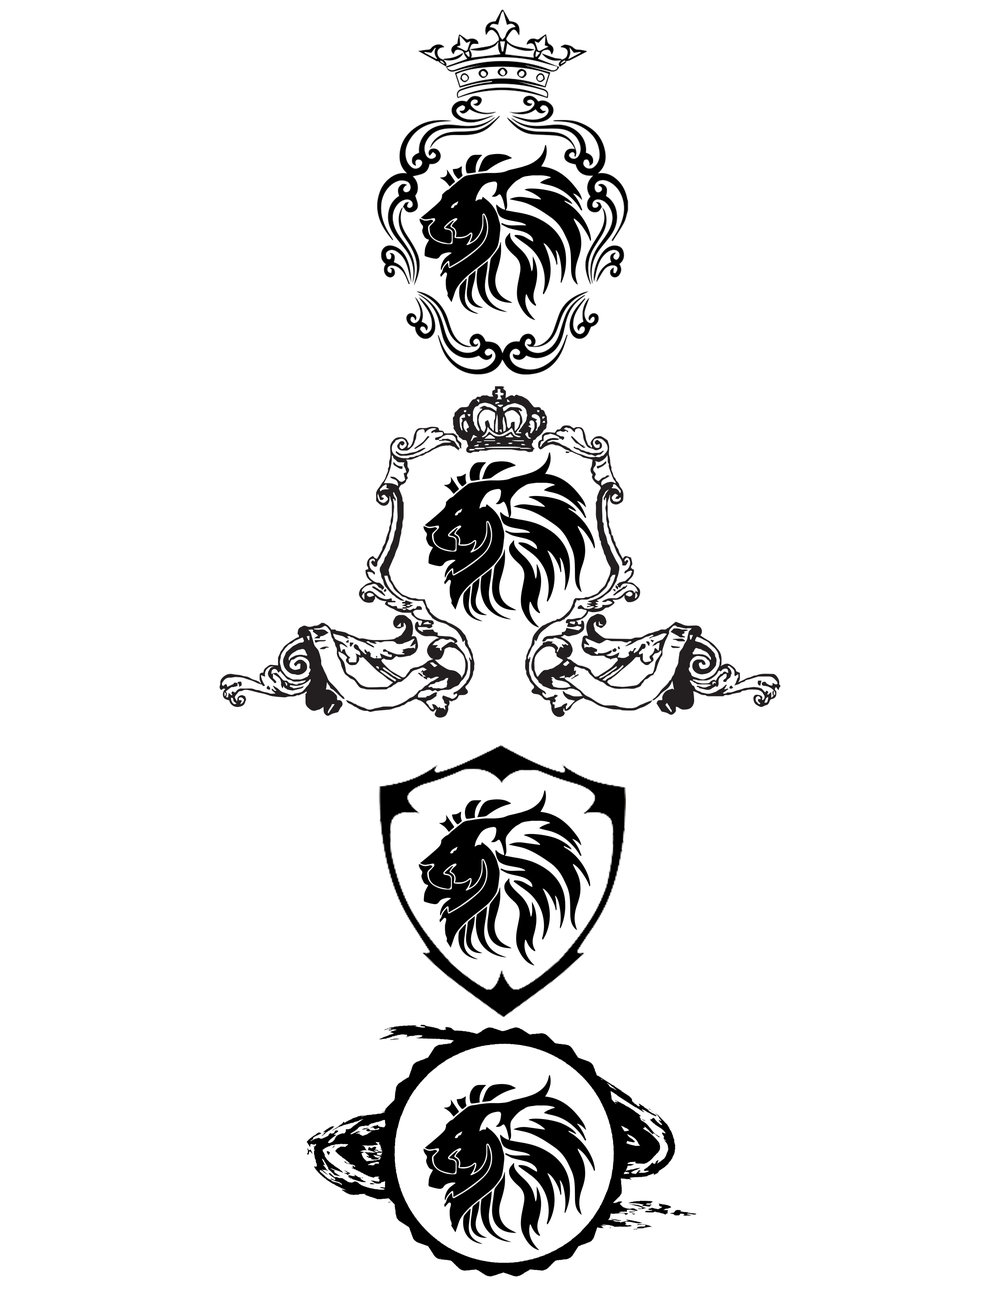 LIONS HEAD LOGO SAMPLES PROOF 2.jpg